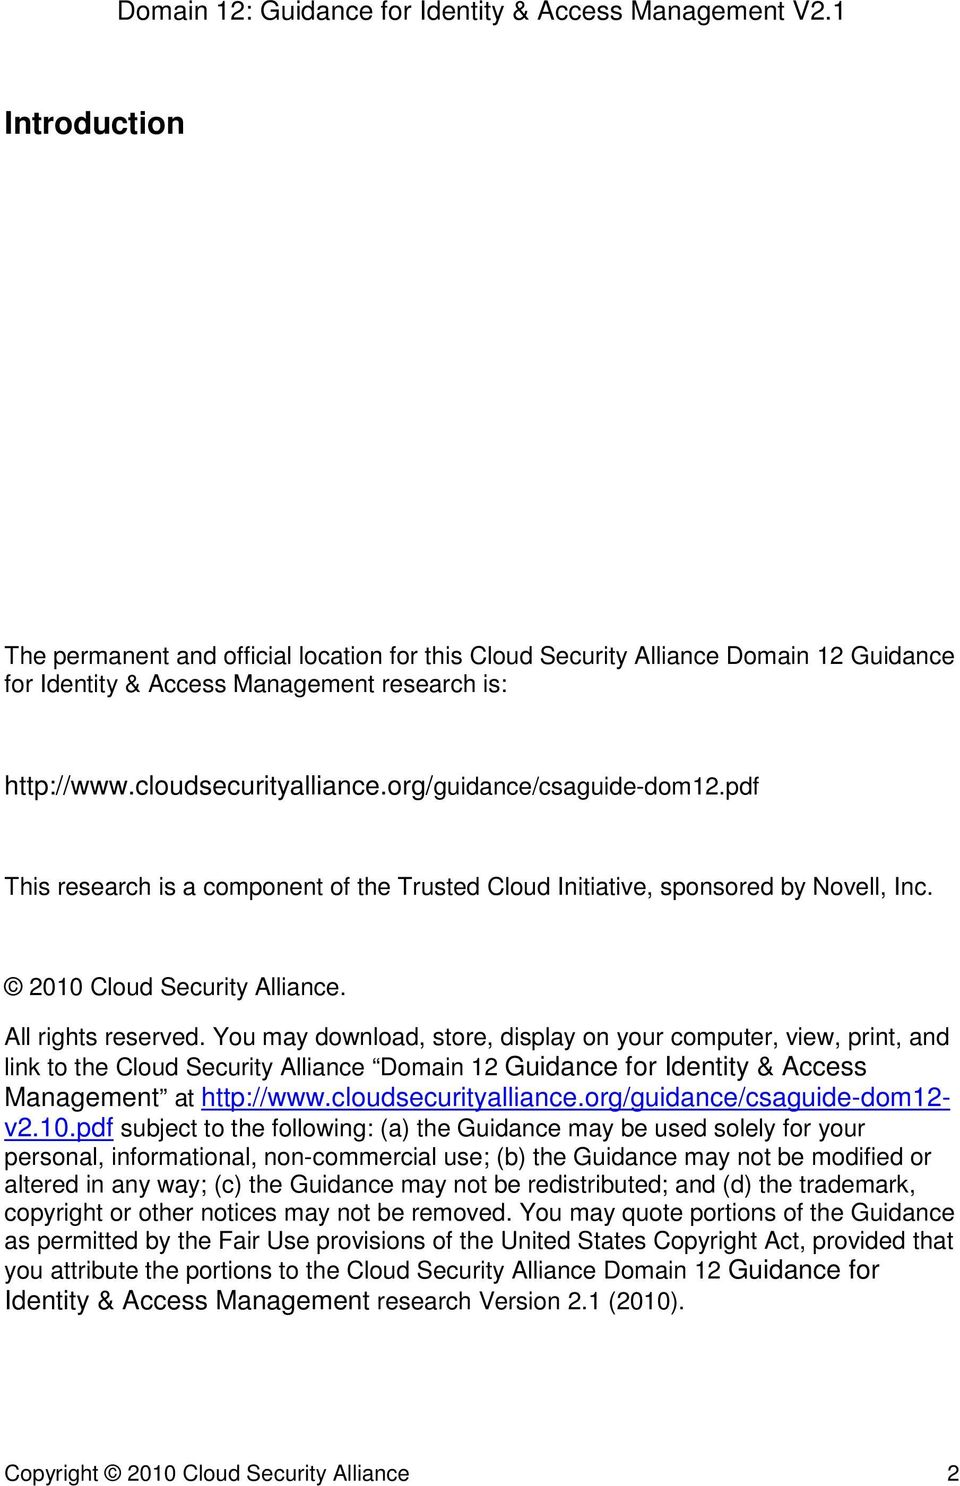 You may download, store, display on your computer, view, print, and link to the Cloud Security Alliance Domain 12 Guidance for Identity & Access Management at http://www.cloudsecurityalliance.